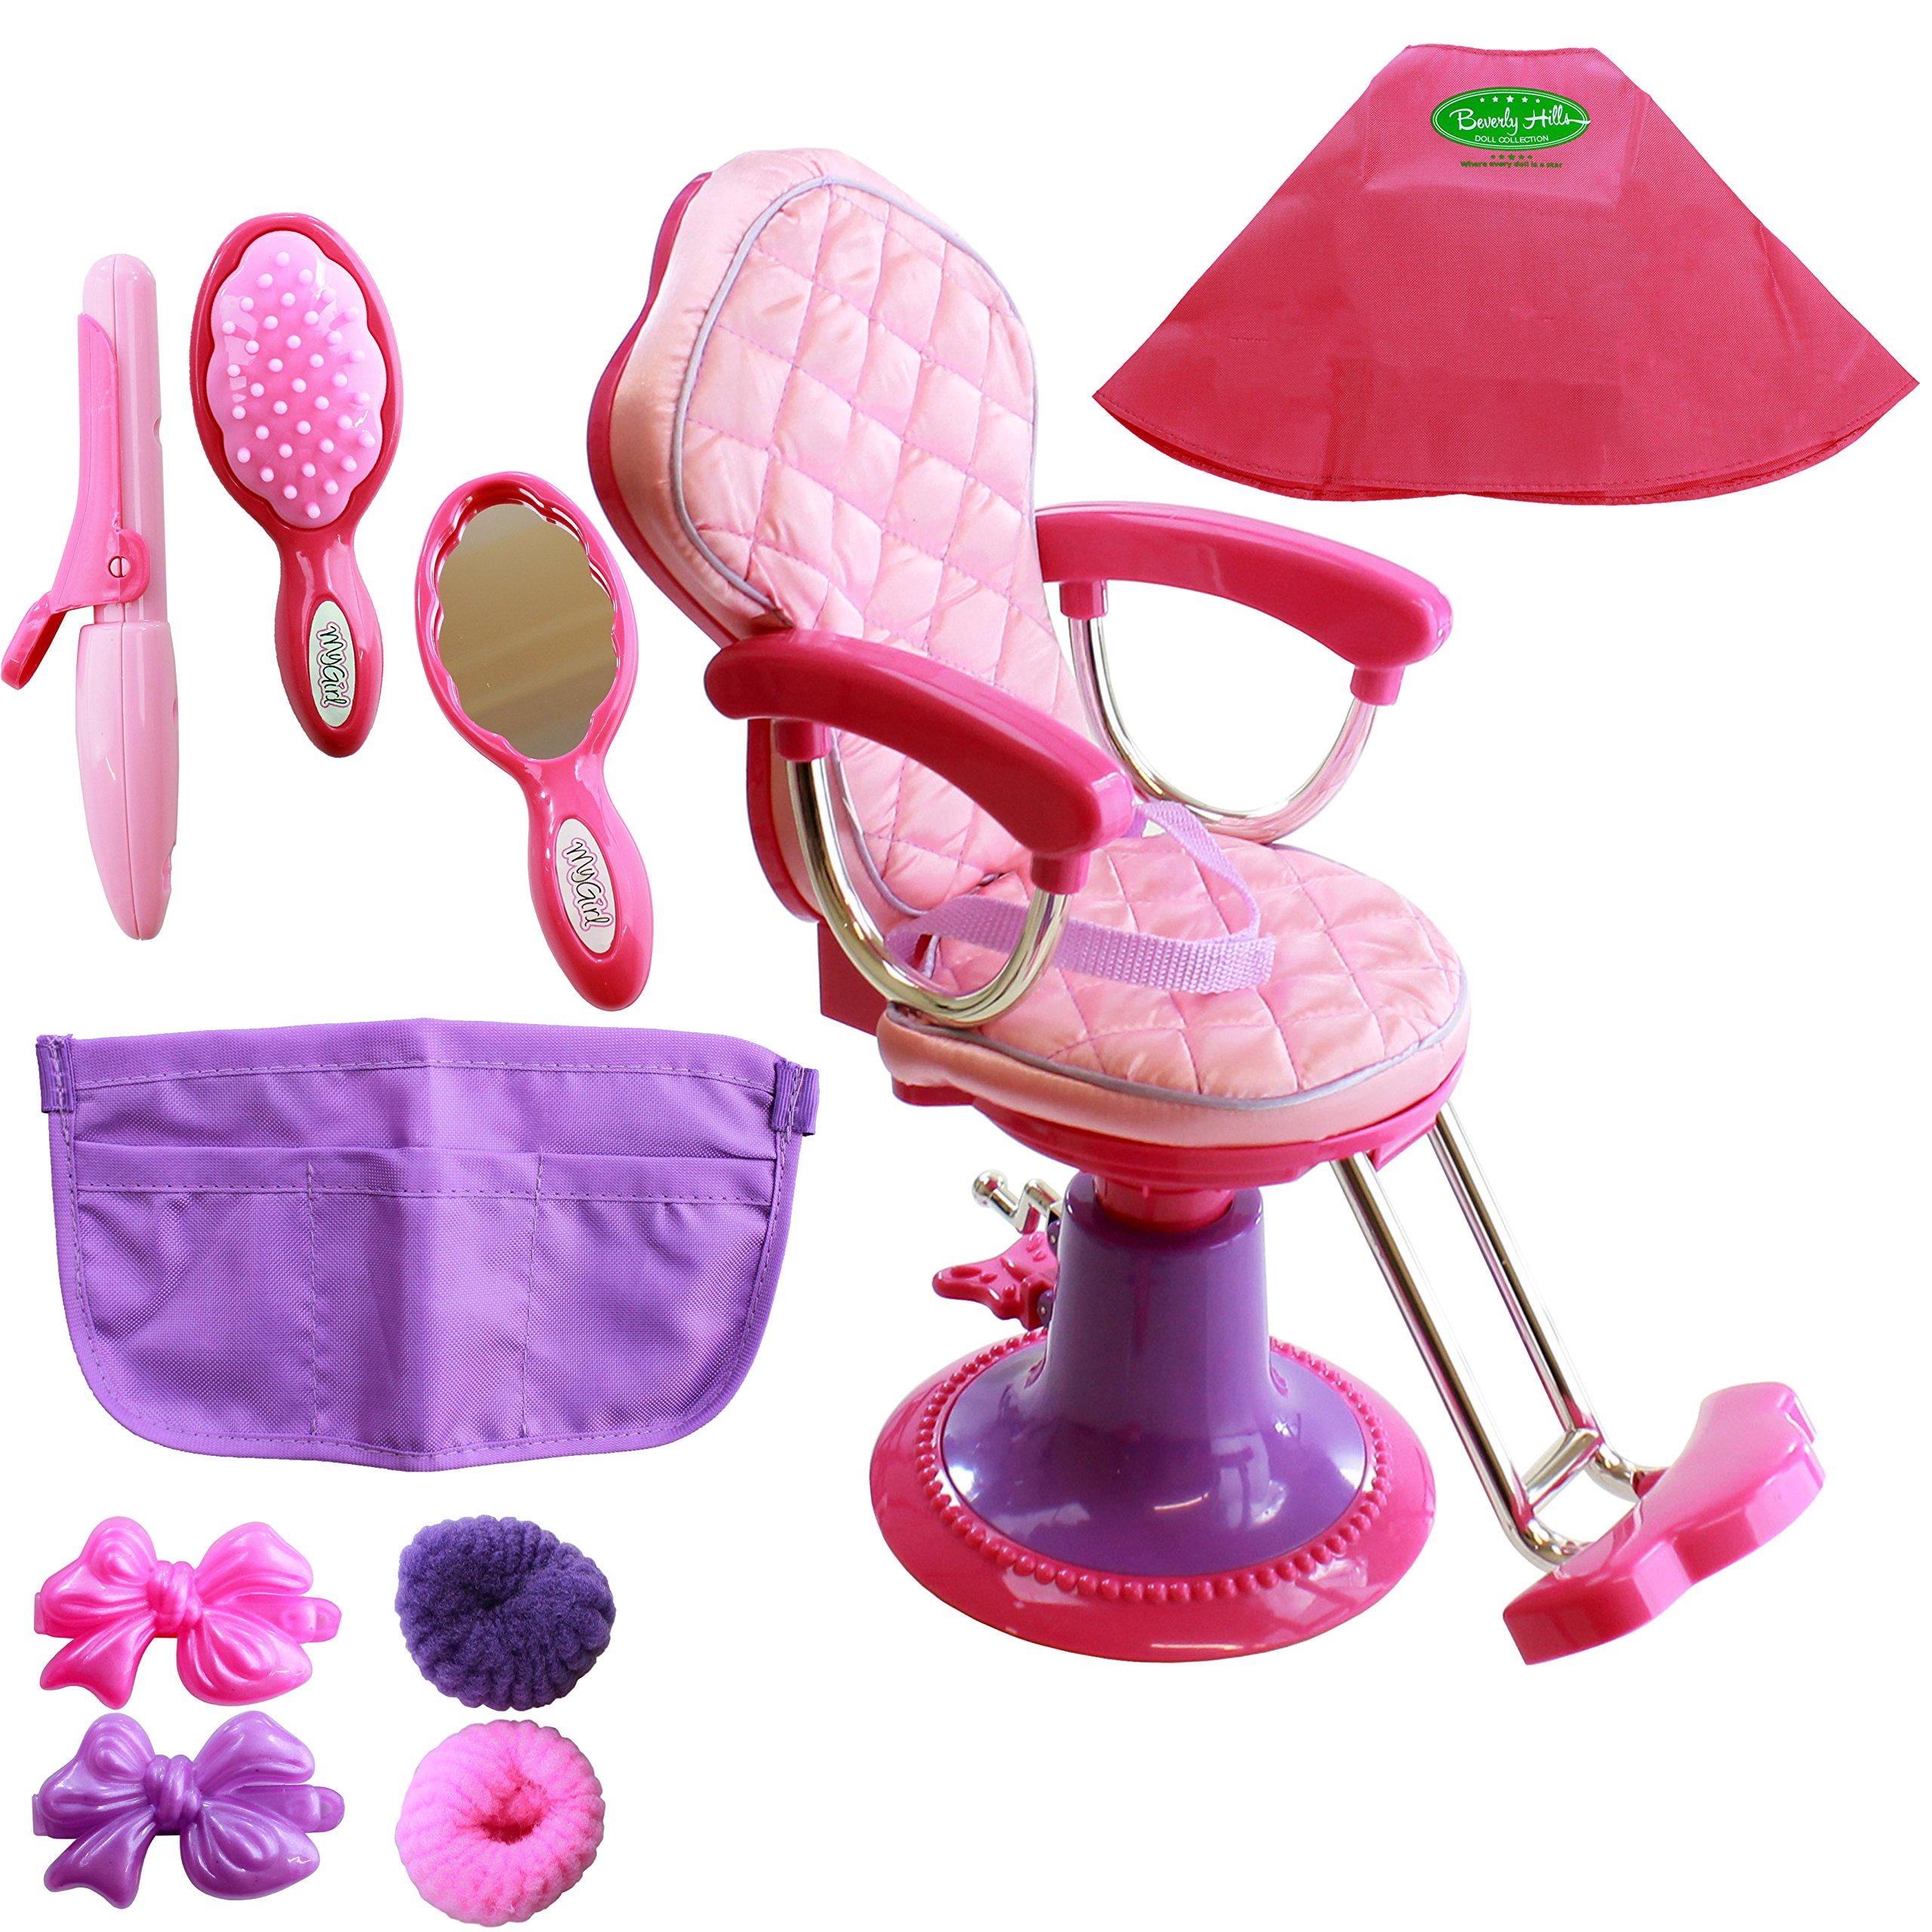 Beverly Hills Doll Collection Salon Chair for 18 Inch American Girl Dolls Fully Assembled with 8 Hair Cutting Accessories by Beverly Hills Doll Collection TM